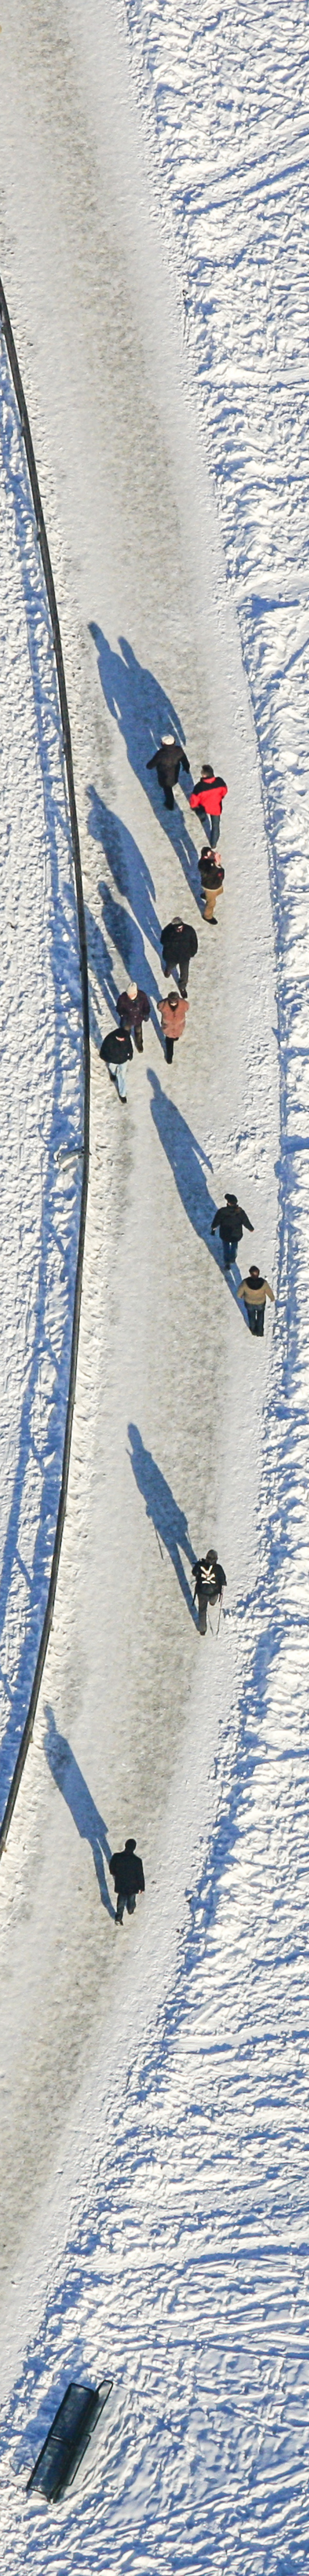 Aerial view of walkers in the wintry Olympic Park in Munich-Milbertshofen - Klaus Leidorf Aerial Photography